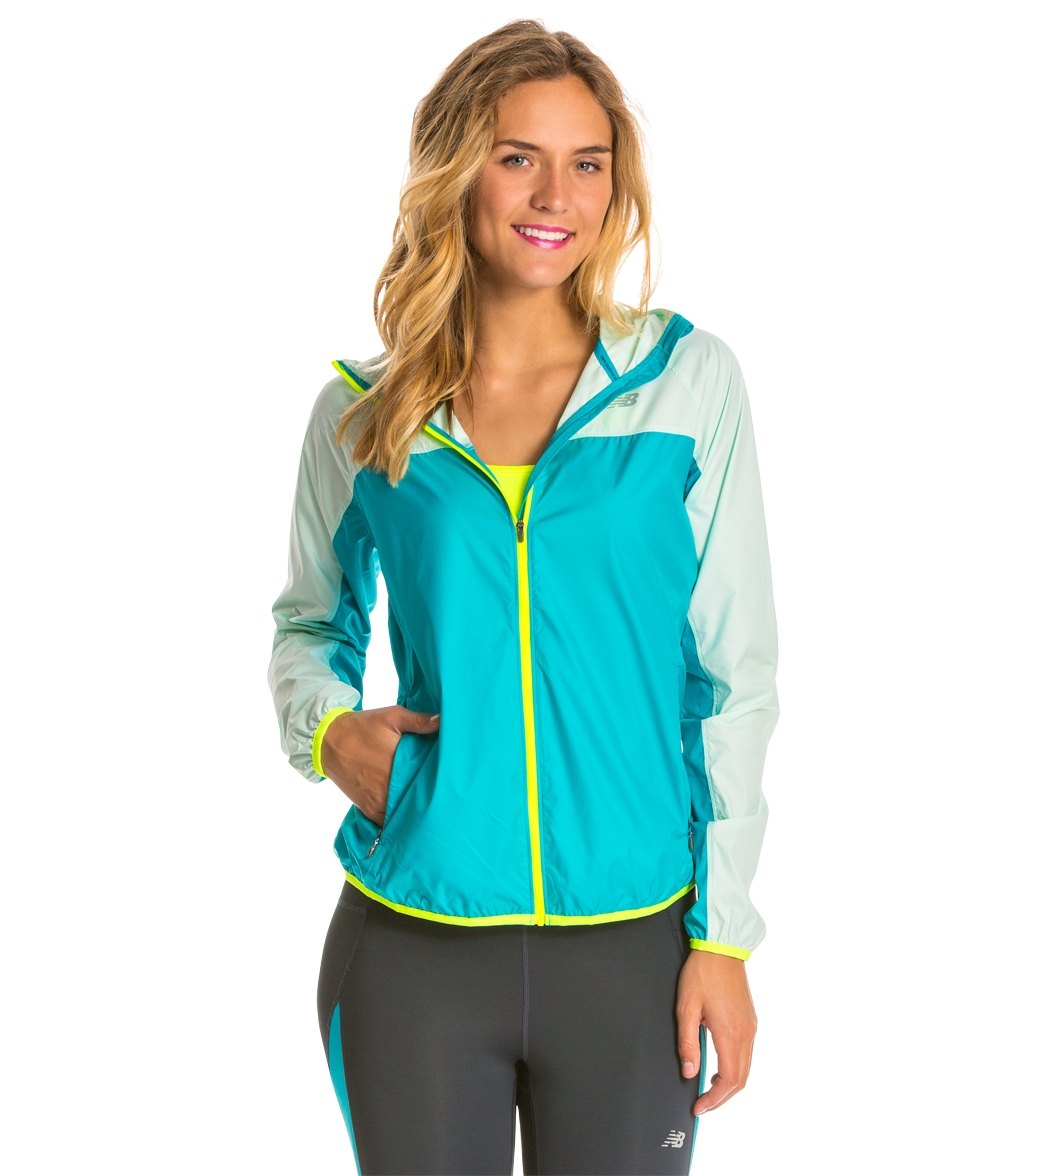 s7k8hwy3 authentic new balance women clothing jacket. Black Bedroom Furniture Sets. Home Design Ideas